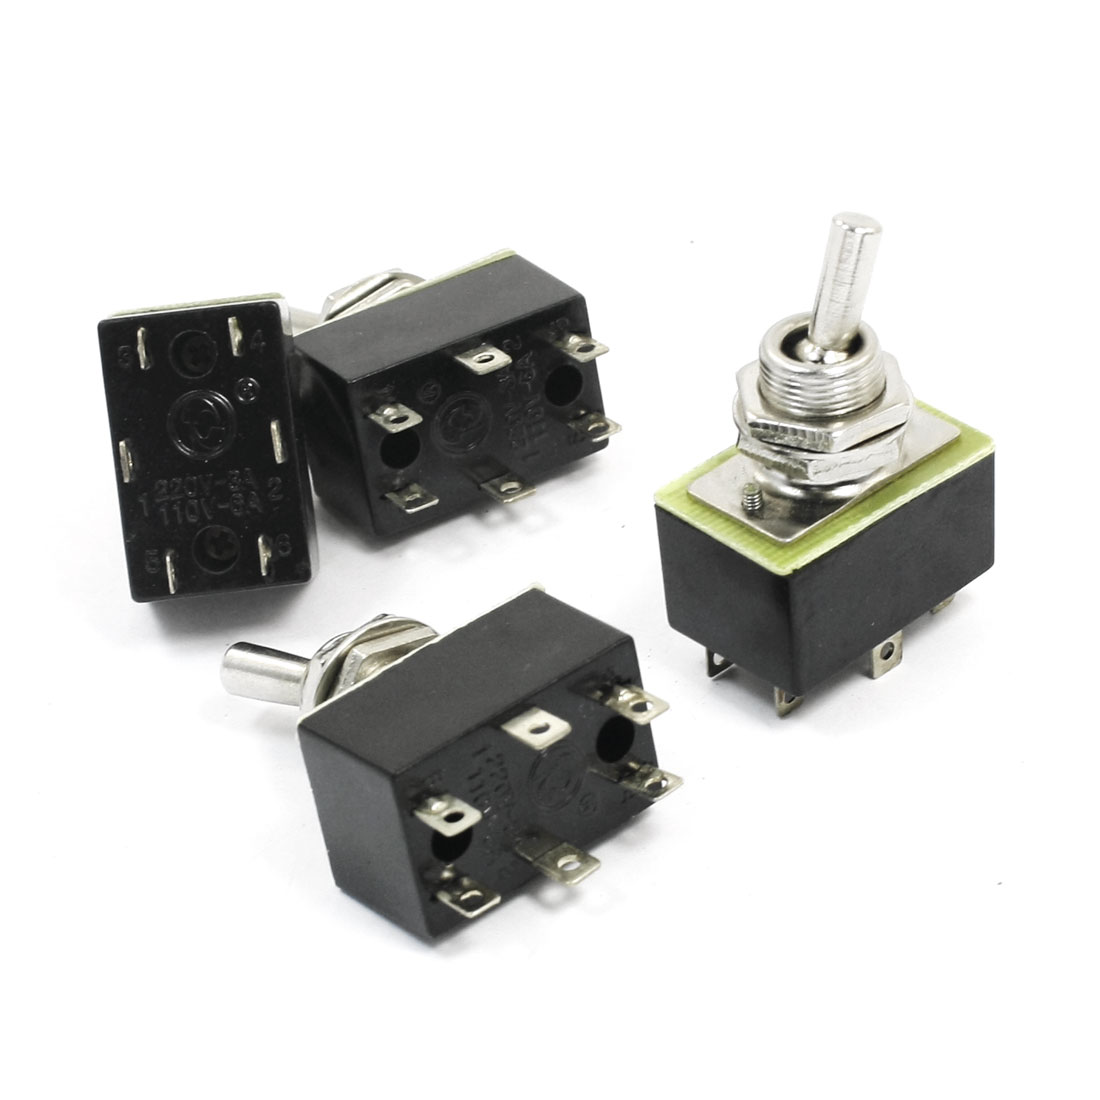 Spare Parts AC 110V 6A ON/OFF 2 Positions 6 Pin Toggle Switch KN3A 2X2 4pcs